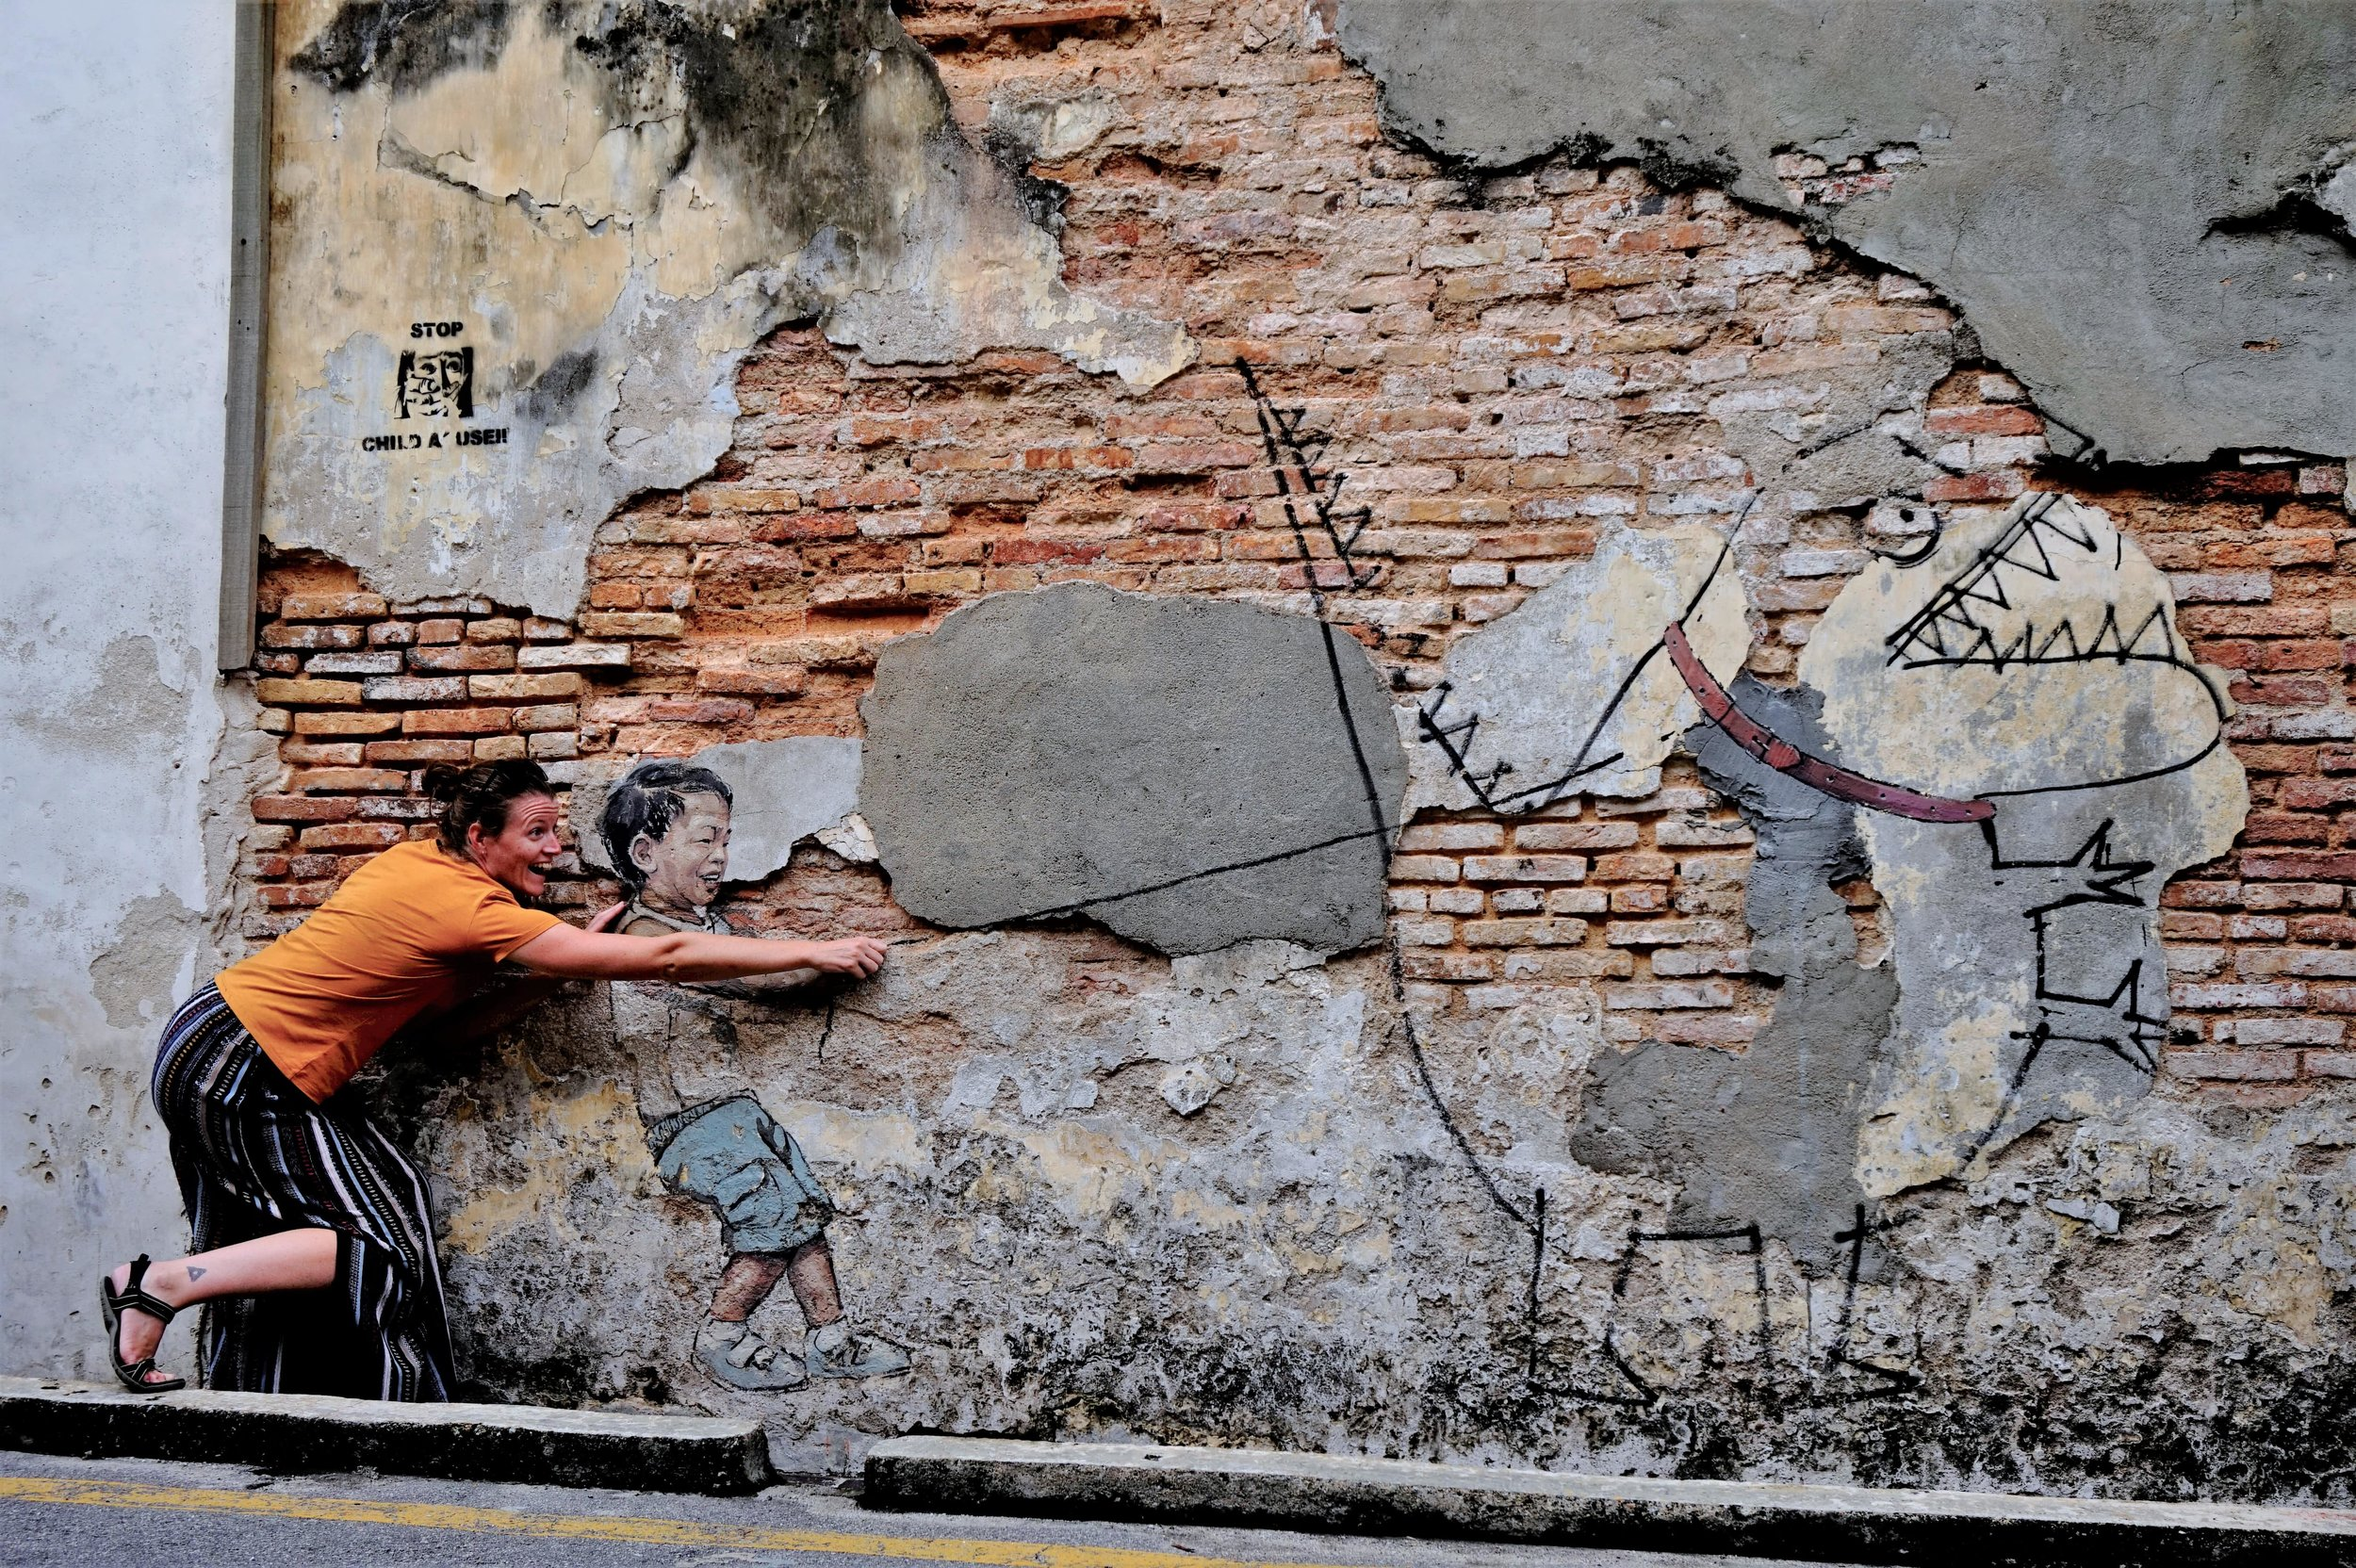 Seeing the street art is one of the best things to do in Penang! Street art is going to be a big part of your 3 day Penang itinerary.